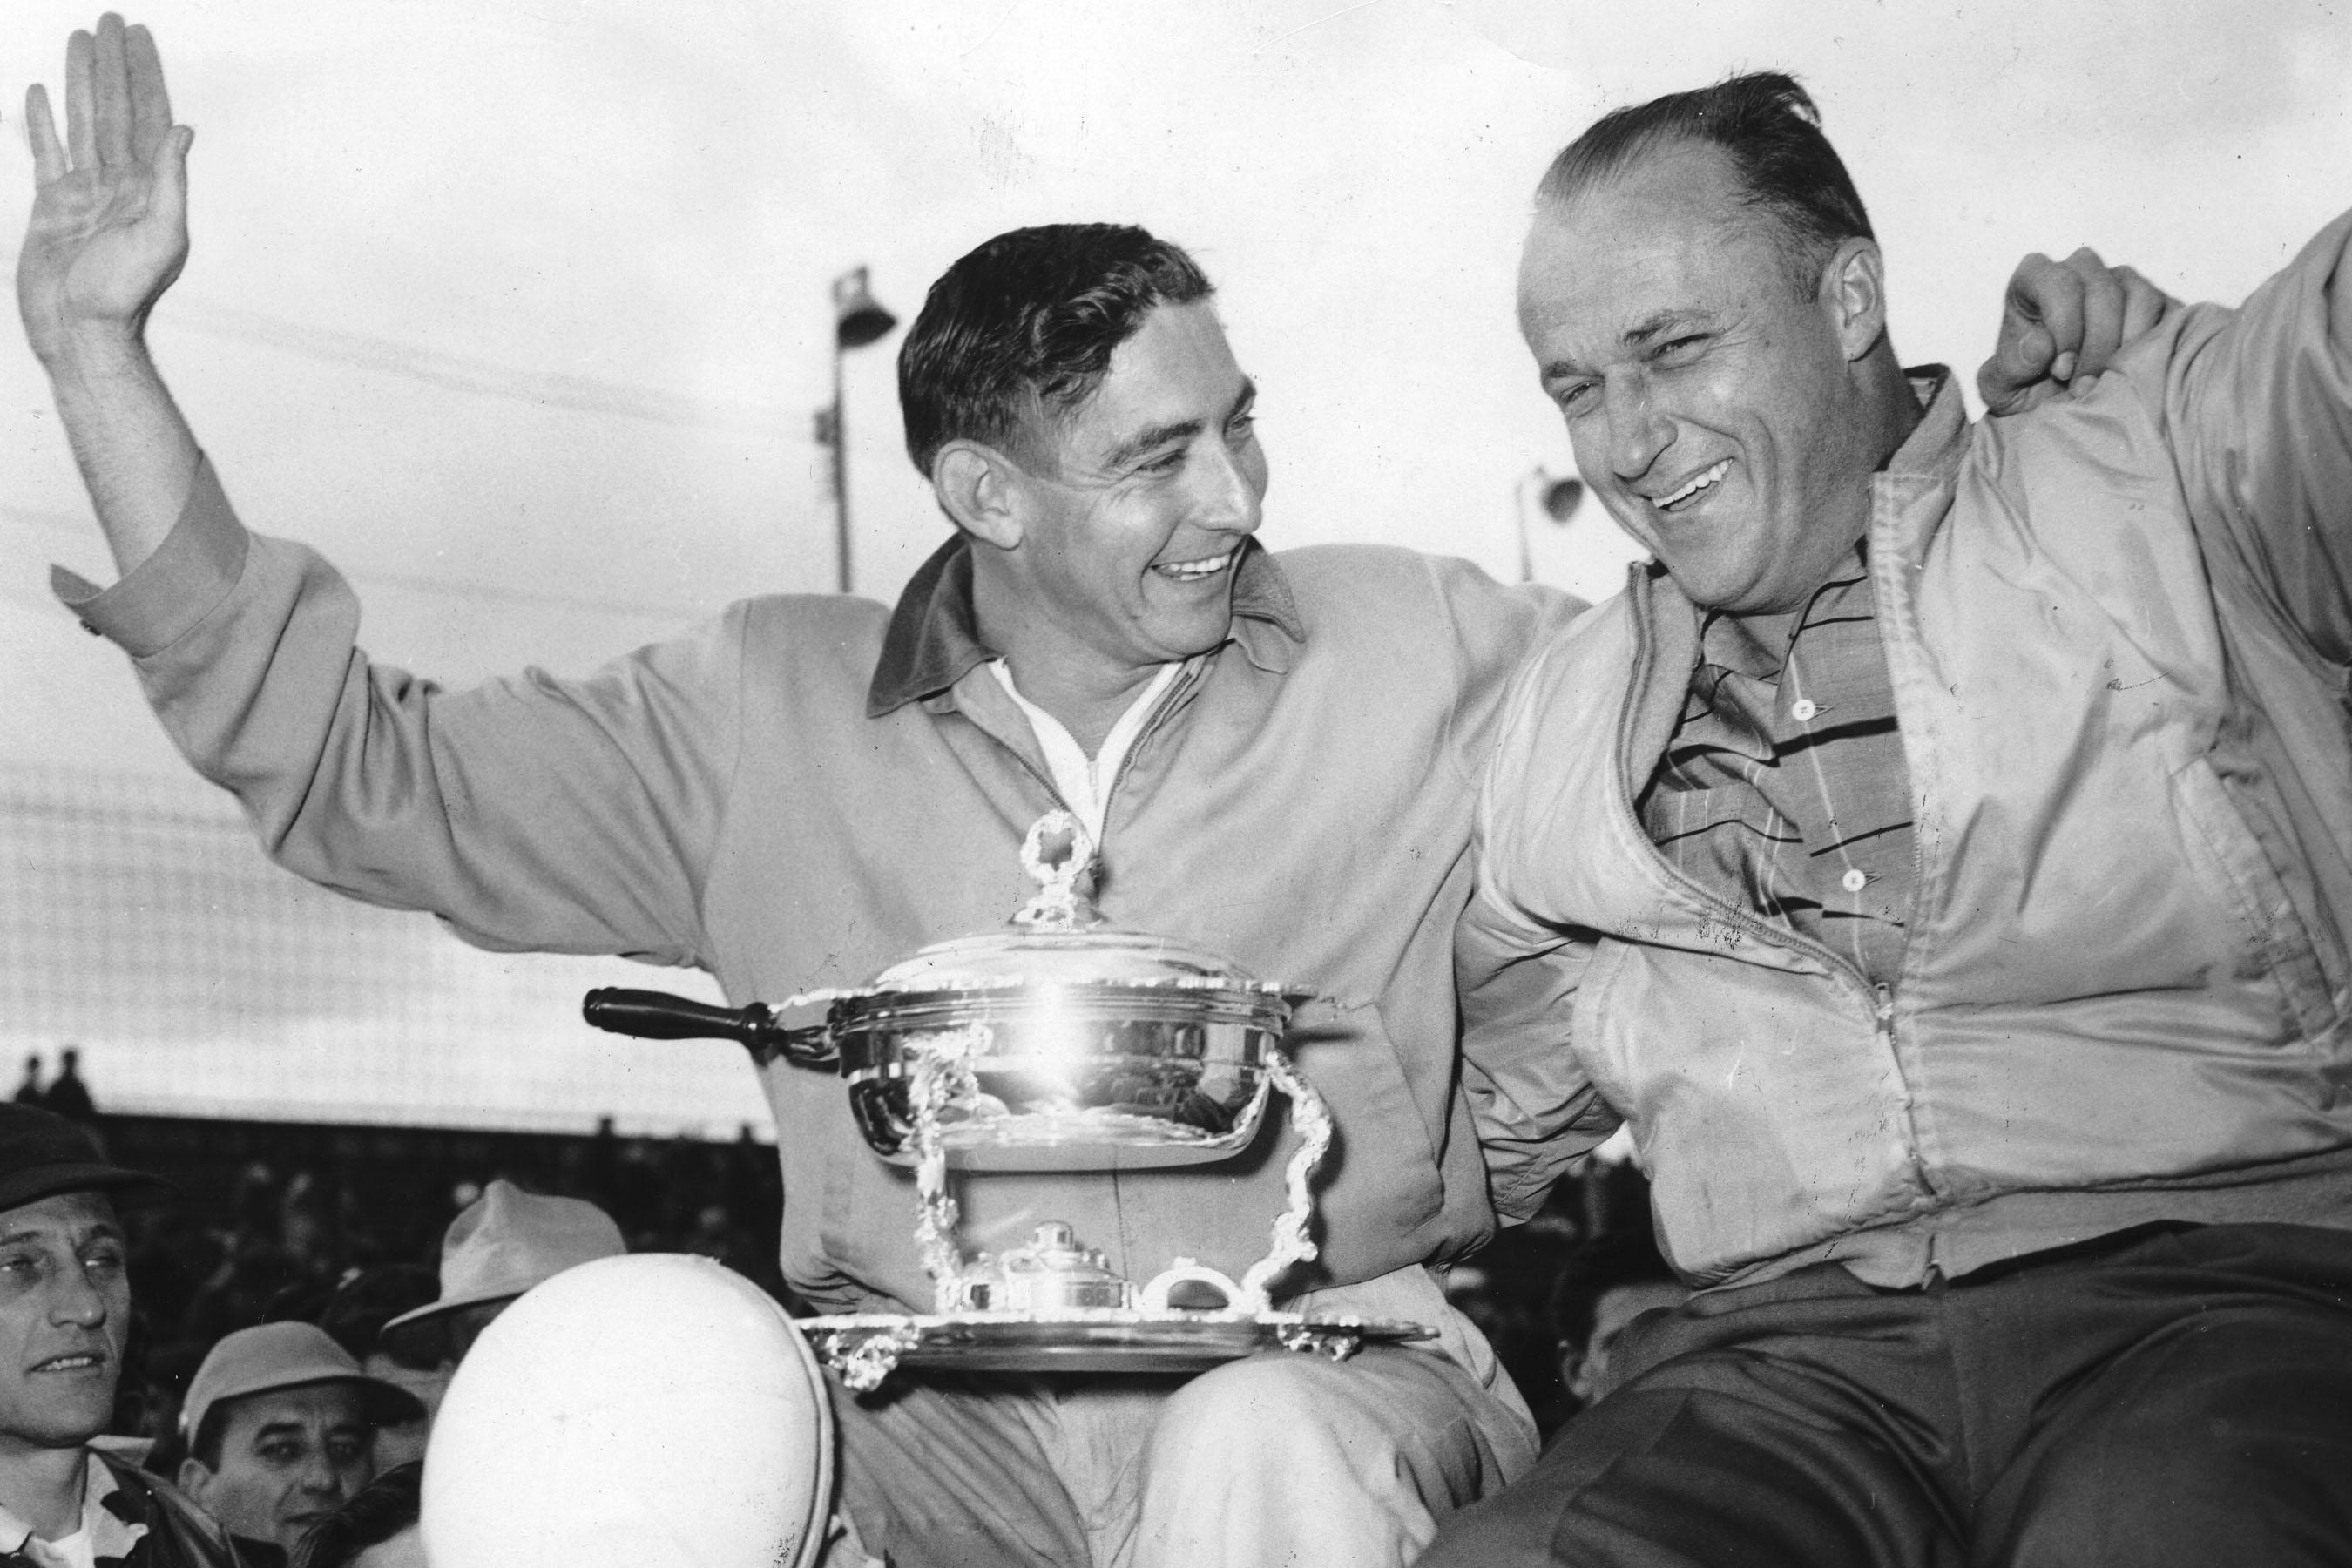 This Week in NASCAR History: July 13-19